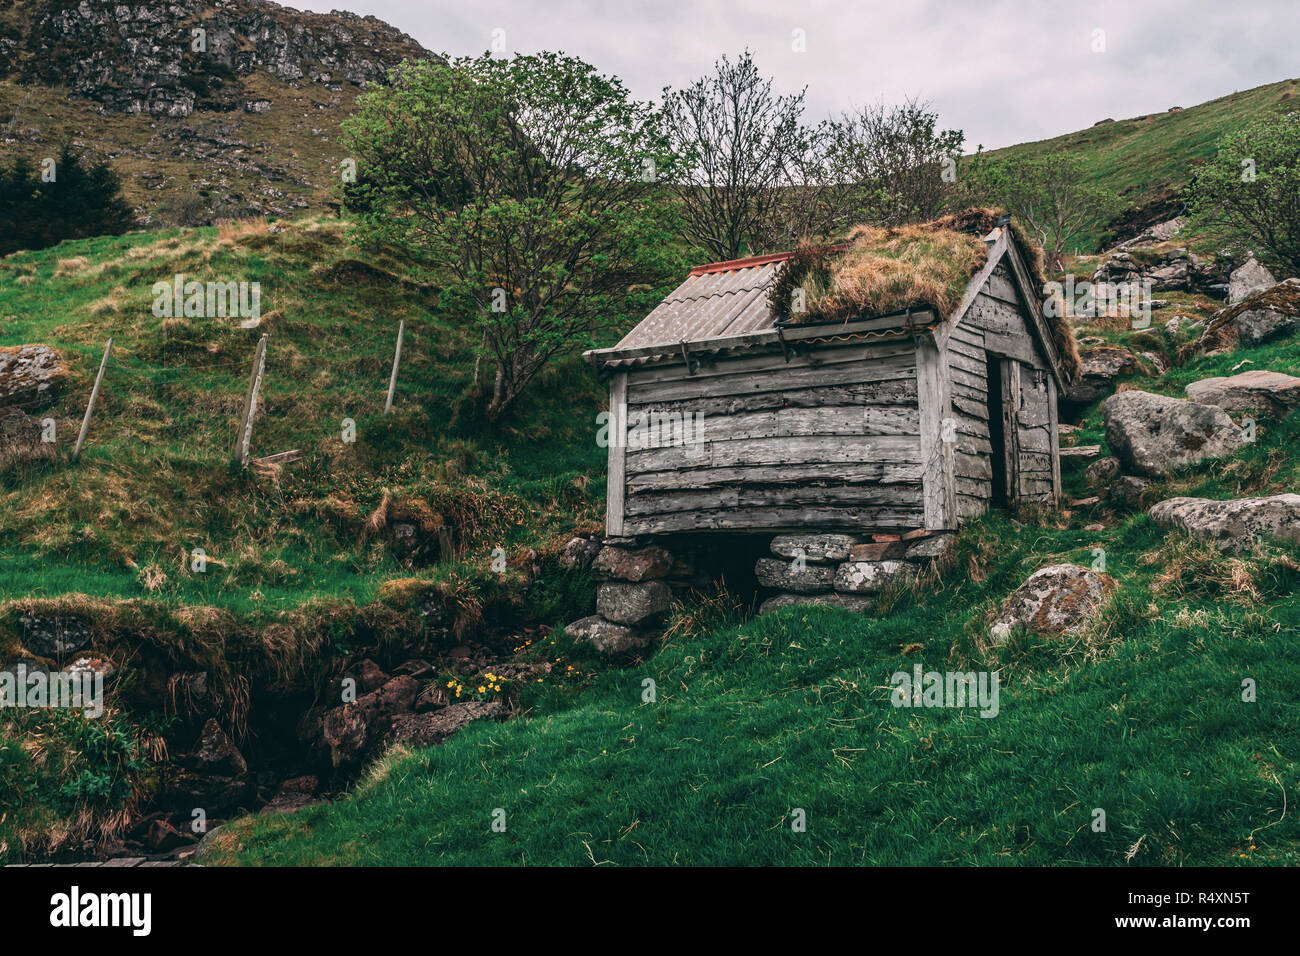 Old Hut - Stock Image